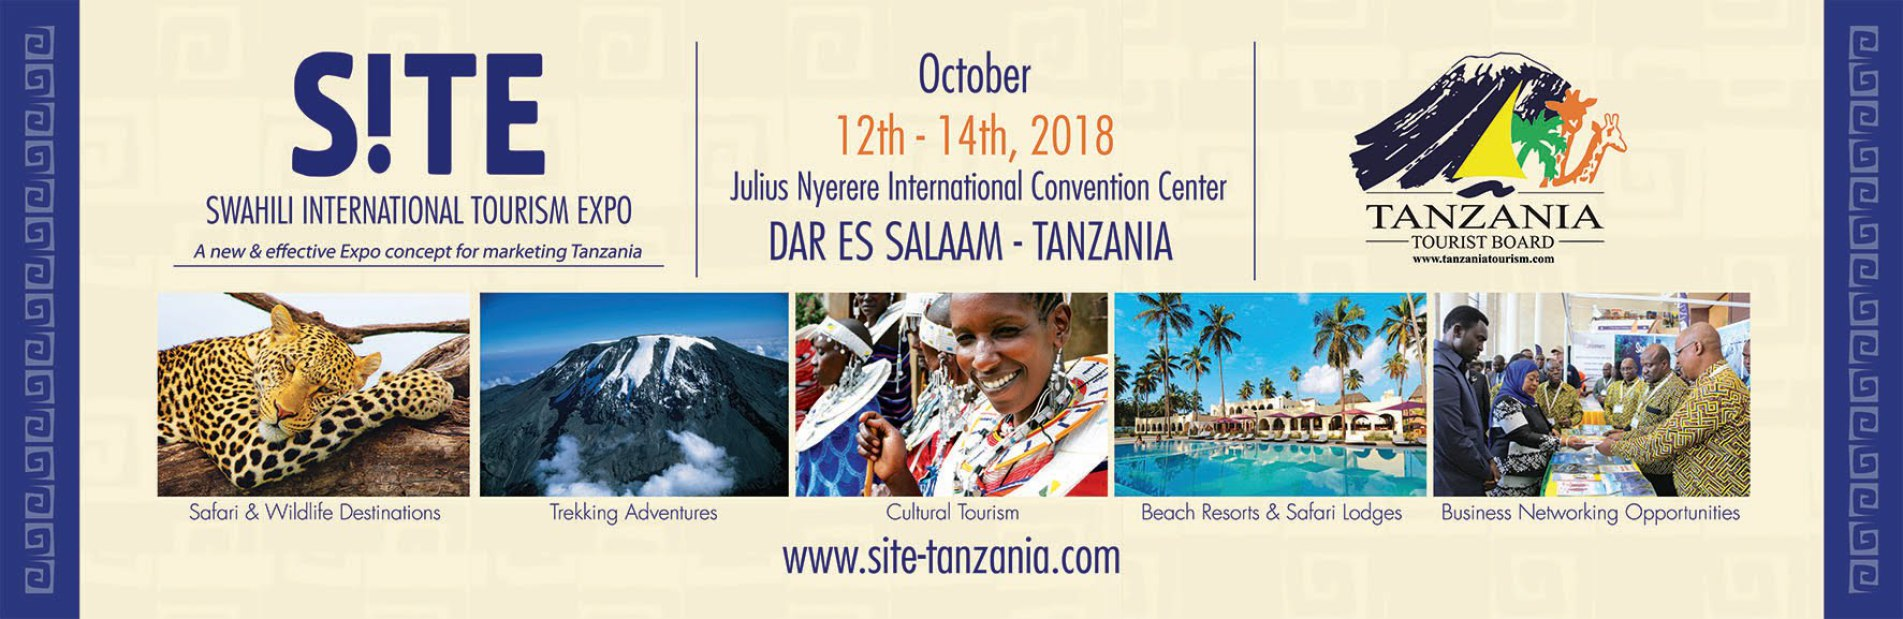 Tanzania Tourism Board gears up for Swahili Int'l Tourism Expo